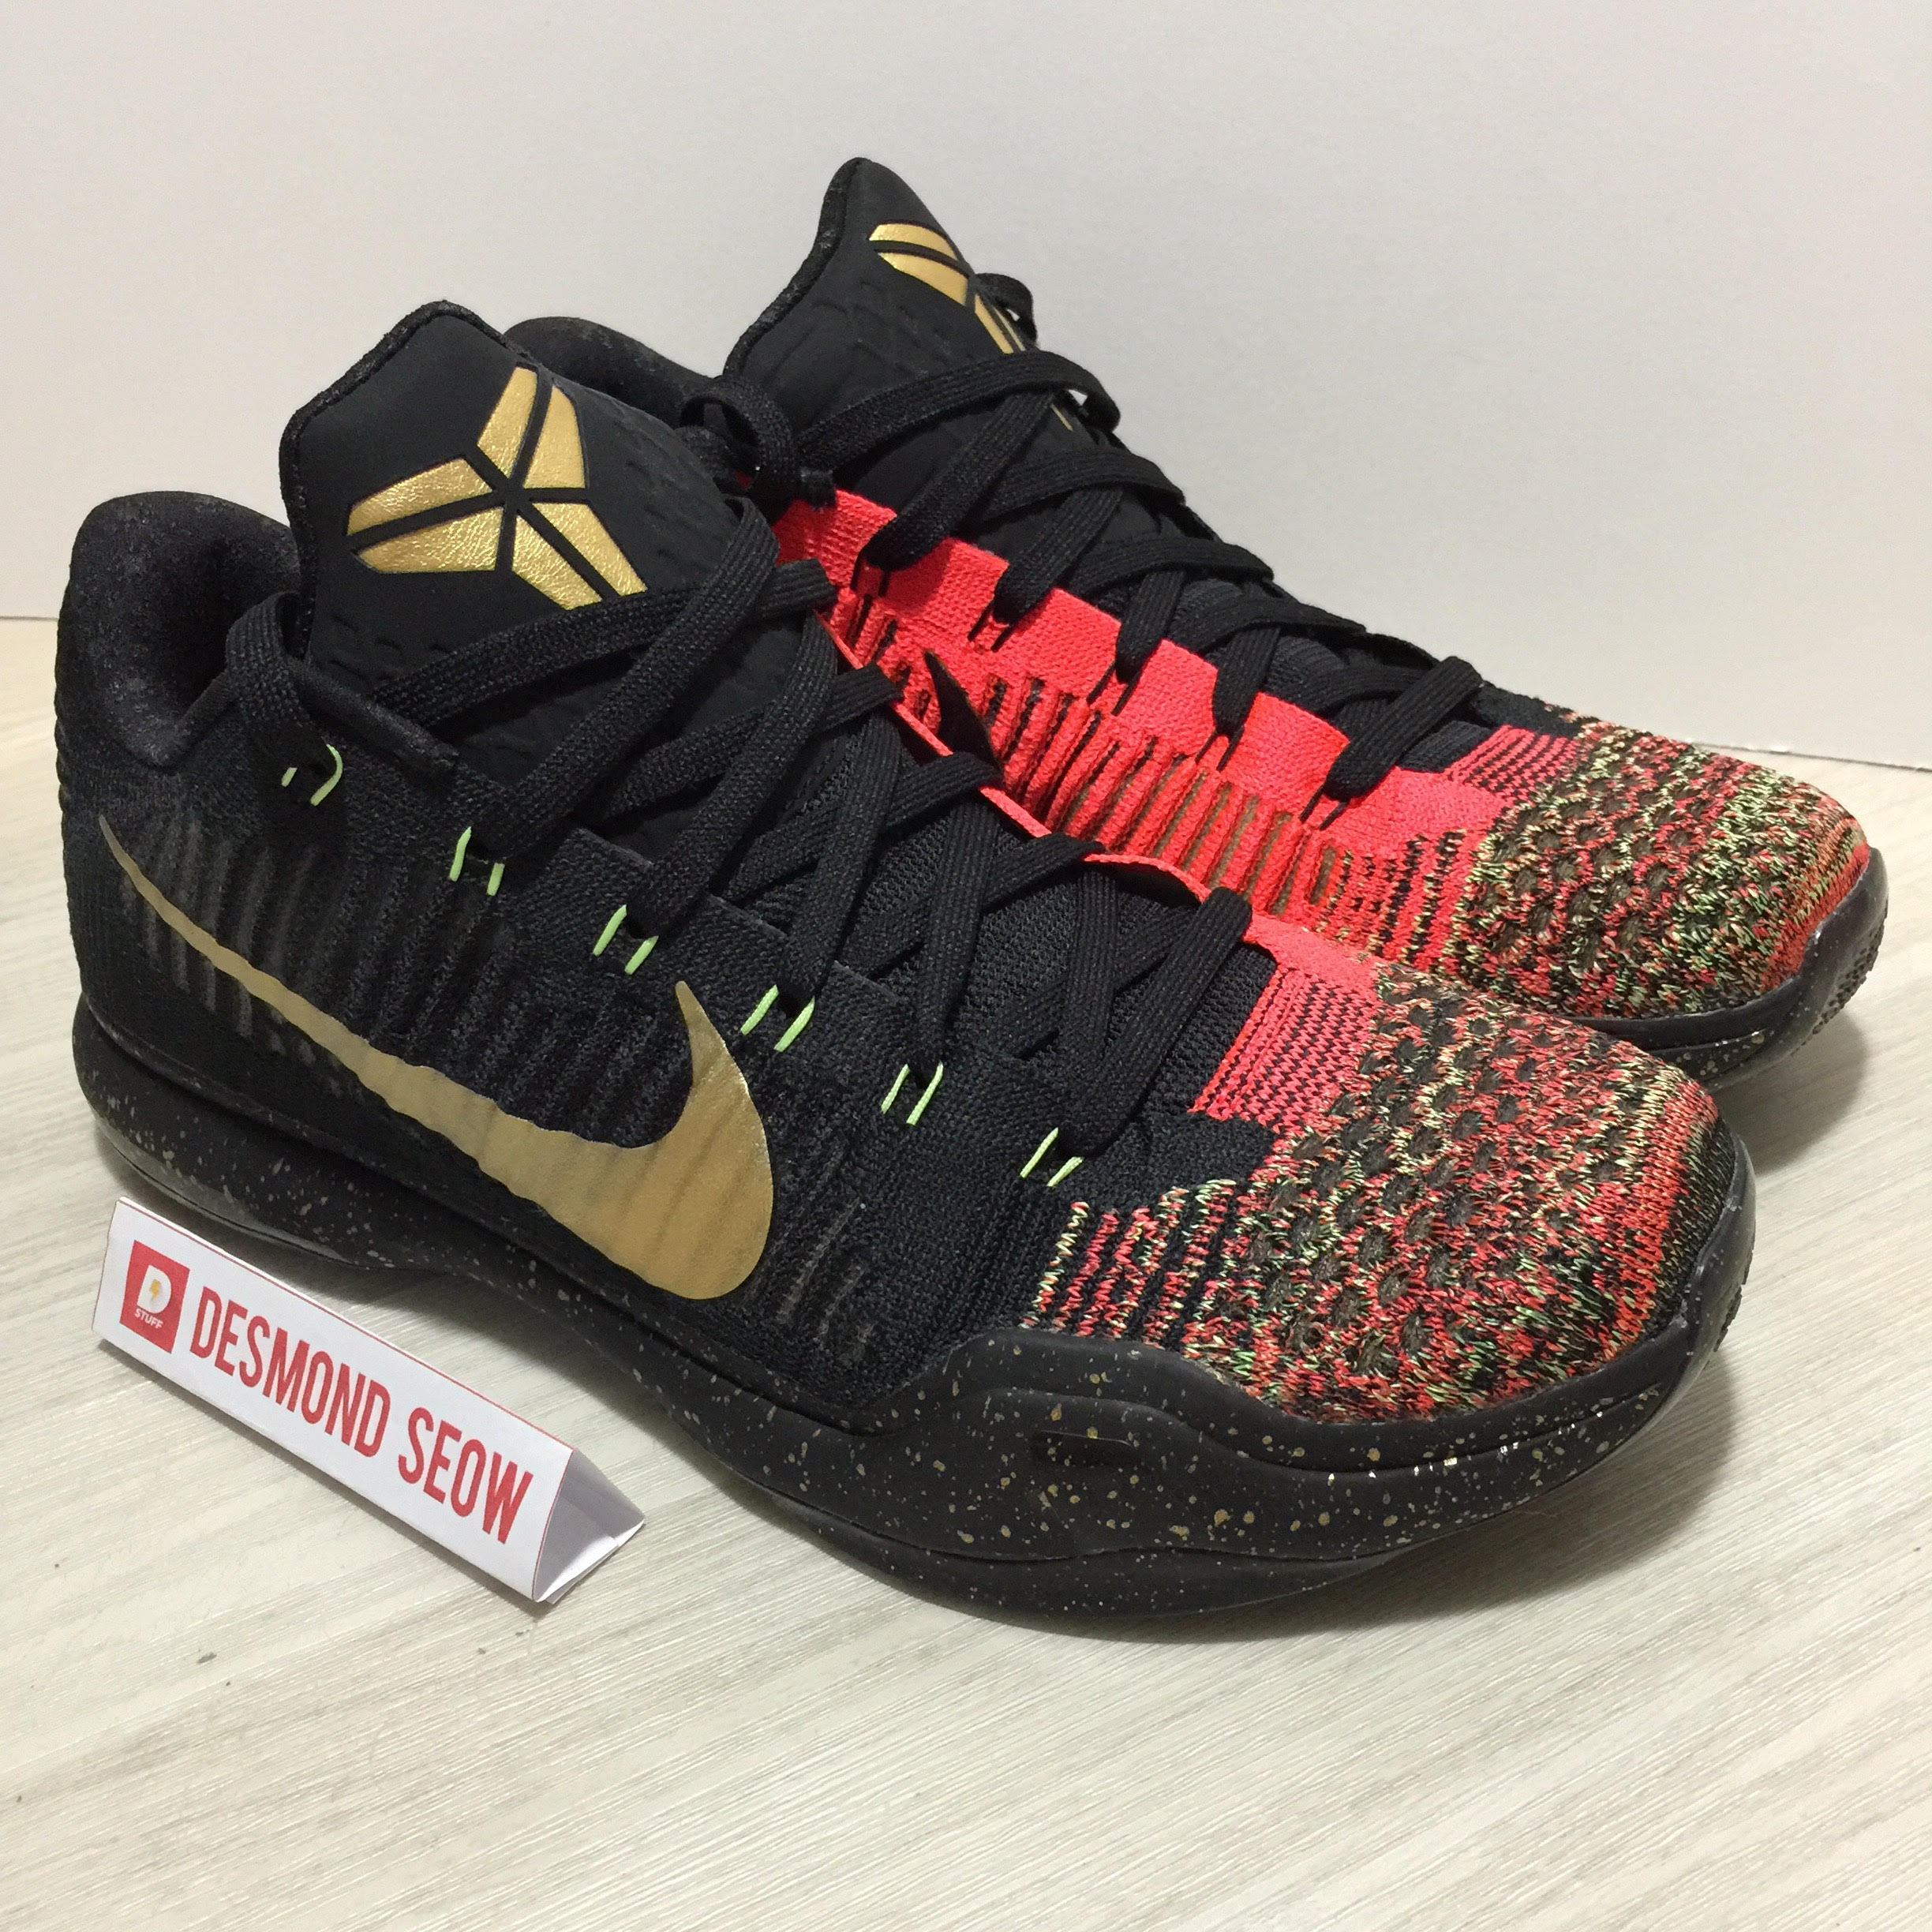 Nike Kobe X Christmas US10, Sports, Sports Apparel on Carousell